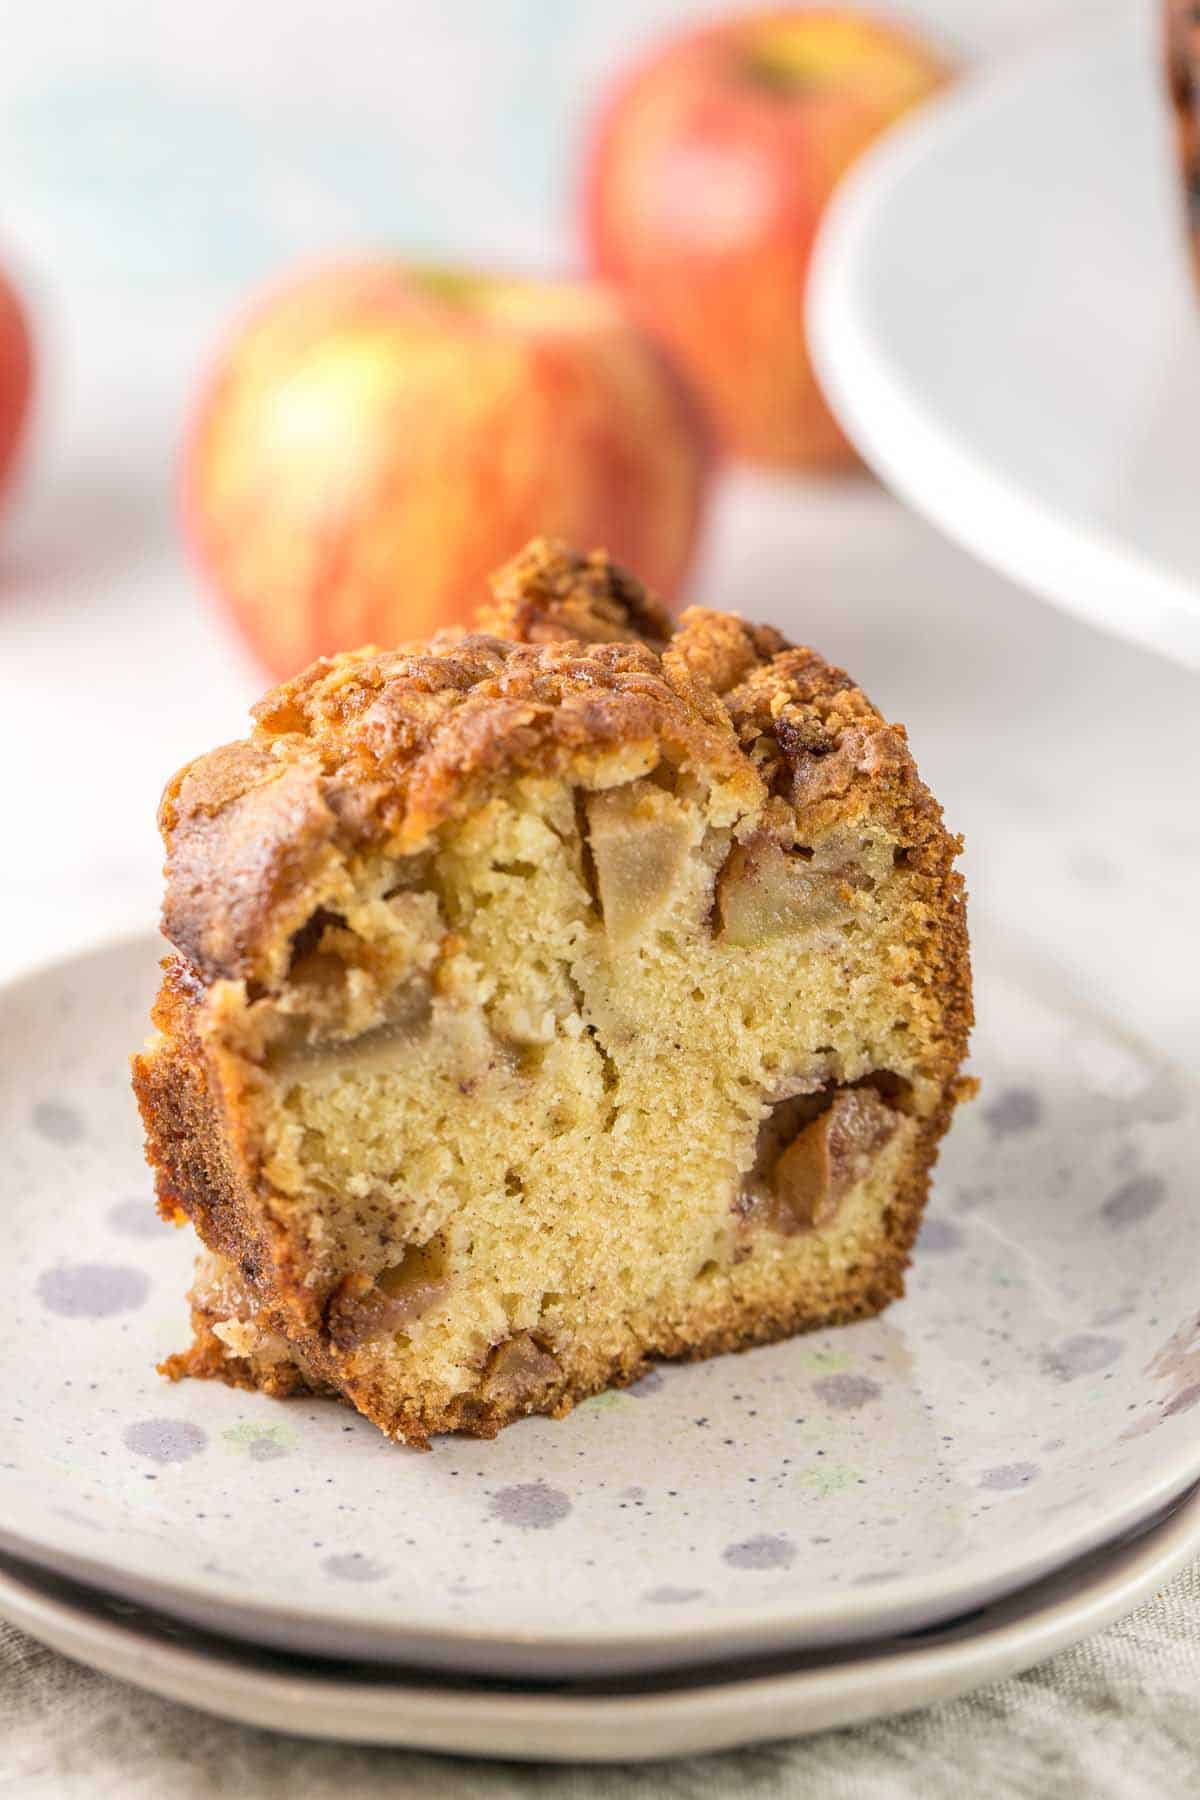 Jewish Apple Cake: Jewish, Dutch, and German apple cake are all the same: an easy mix by hand dairy free apple cake. Full of apples and cinnamon, it's the perfect fall treat! #bunsenburnerbakery #cake #applecake #jewishapplecake